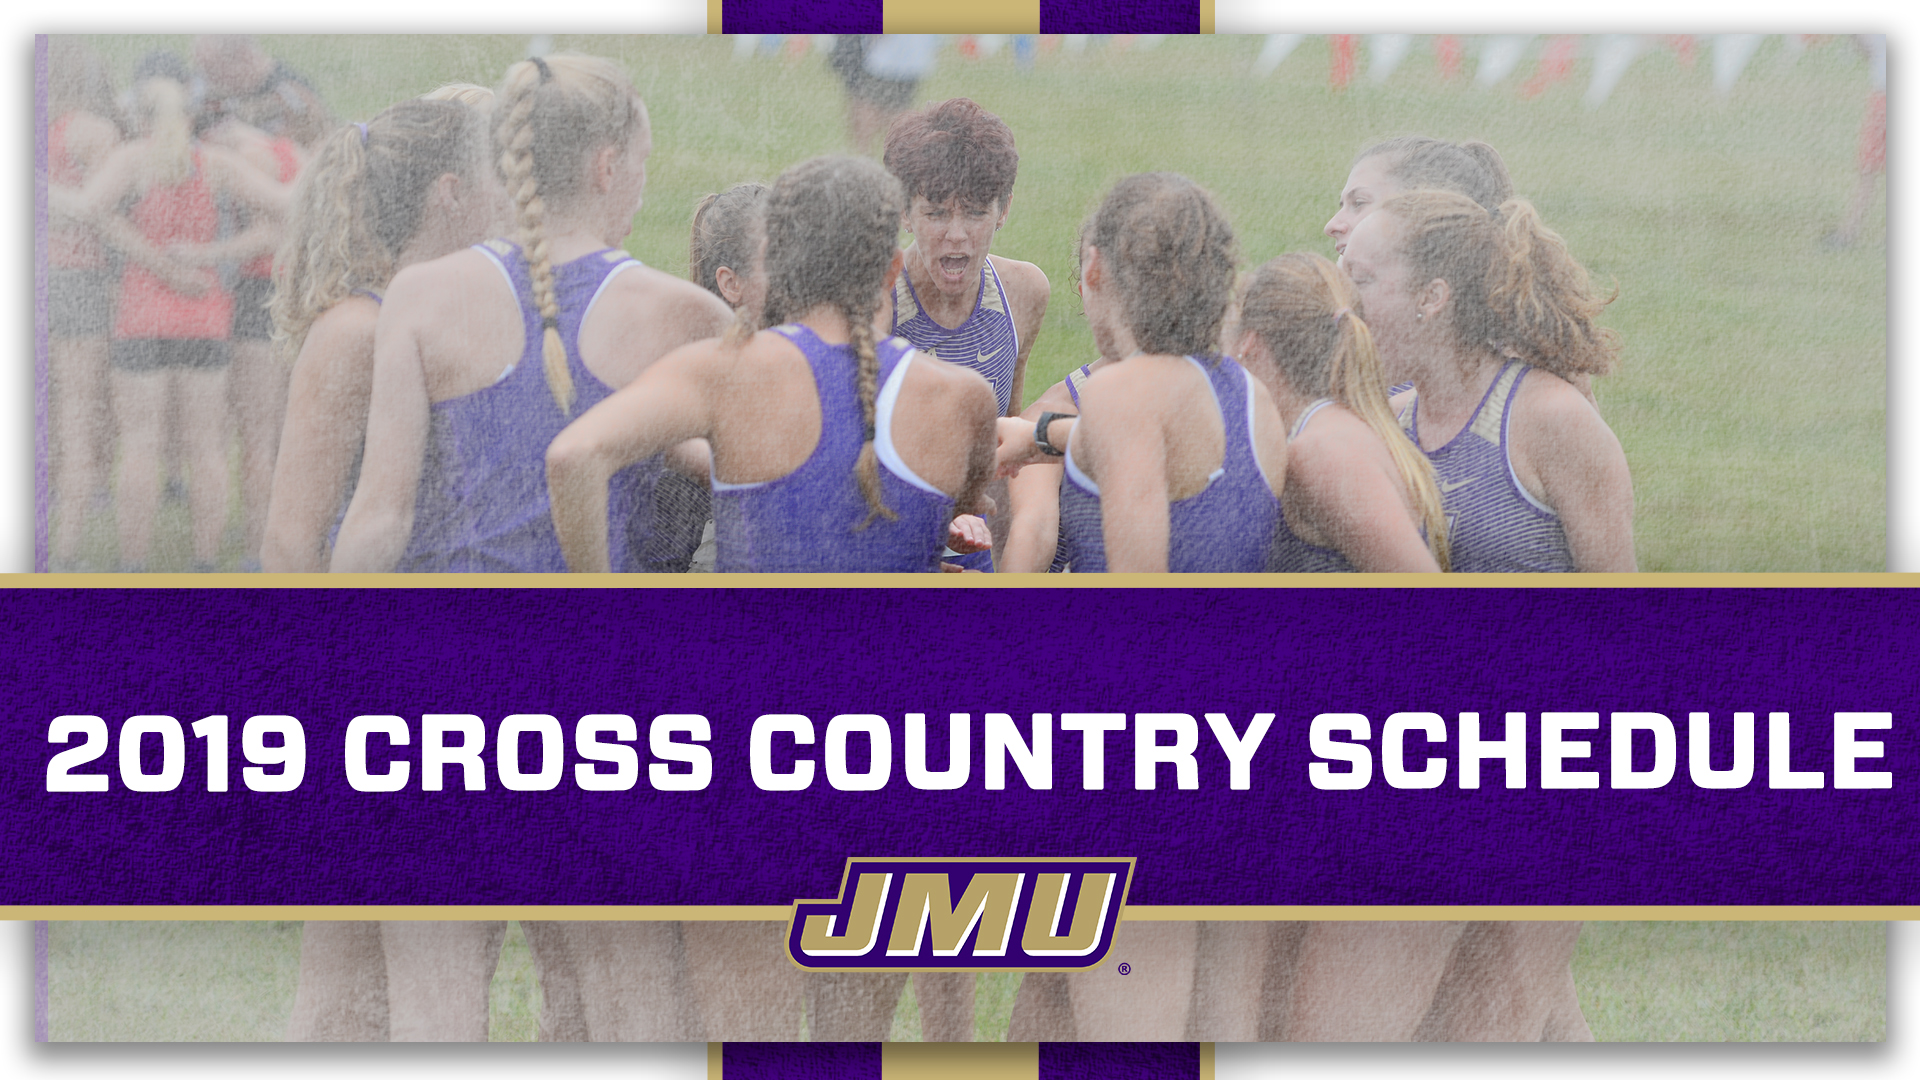 Cross Country: Cross Country Announces 2019 Schedule